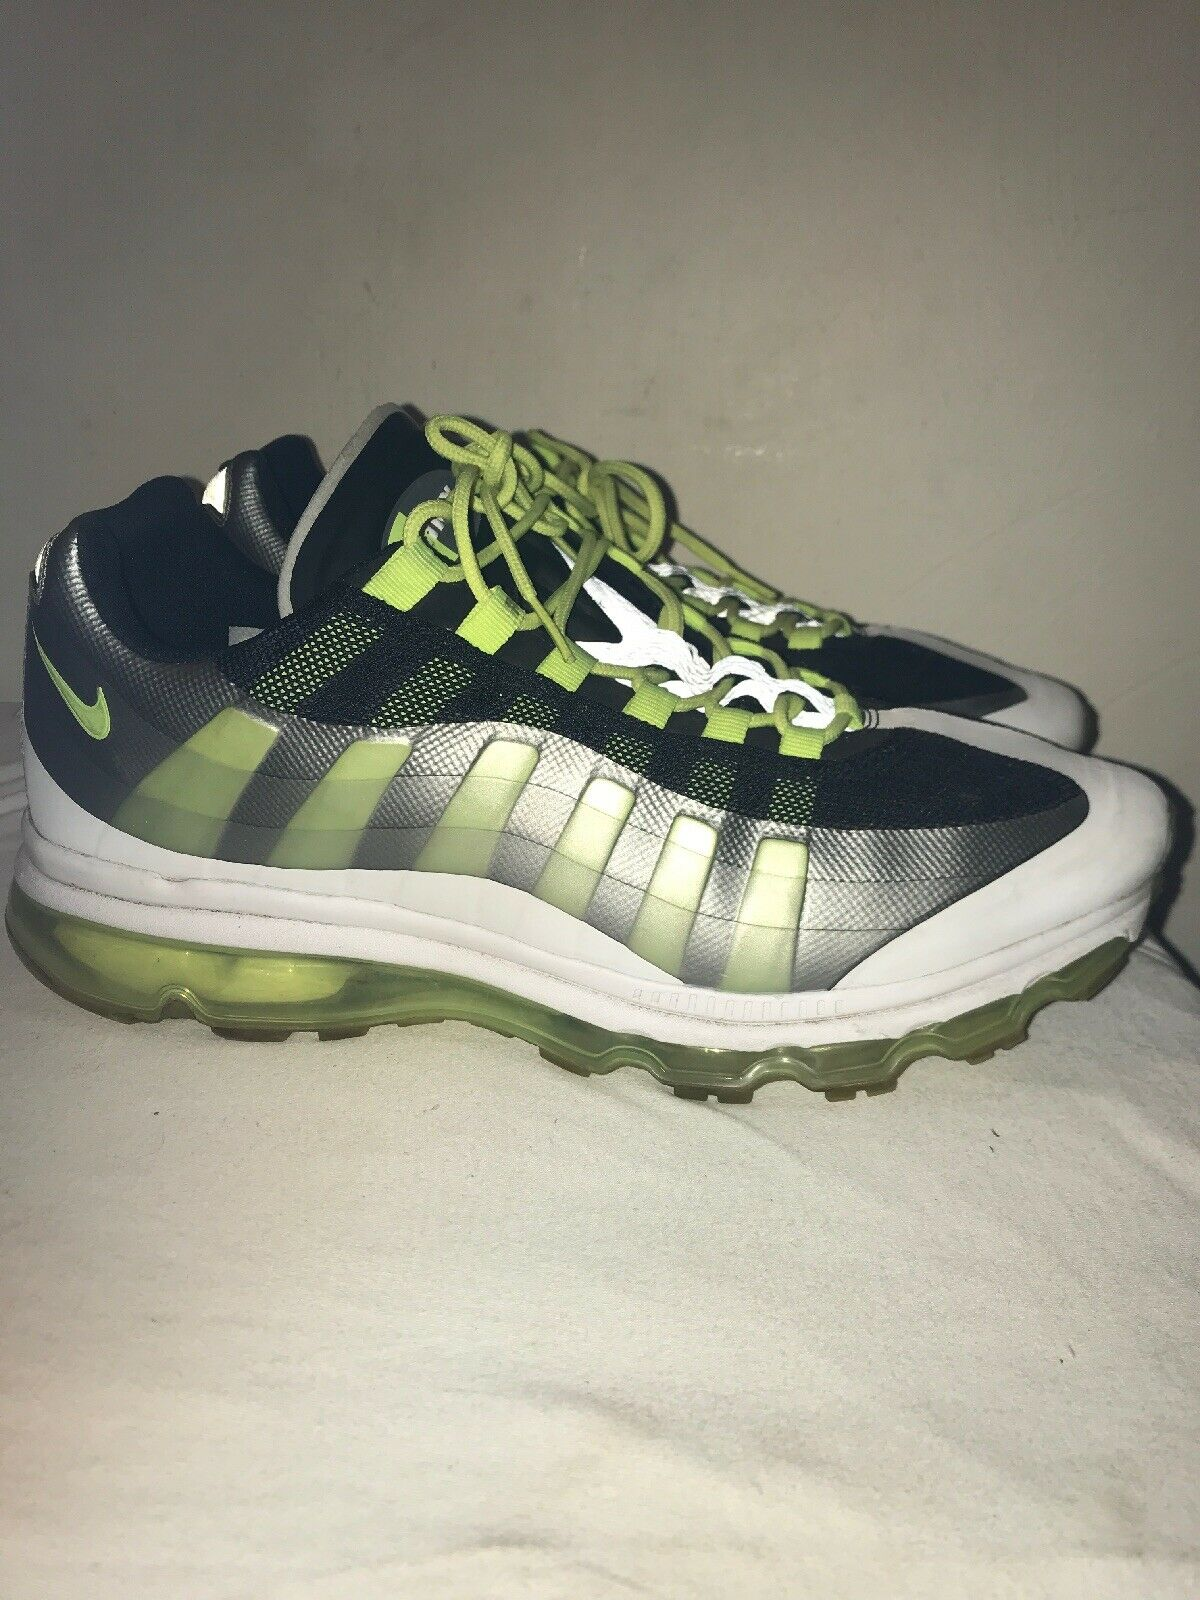 Pre-owned Nike Air Max 95+ BB Athletic shoes Size 13 511307-010